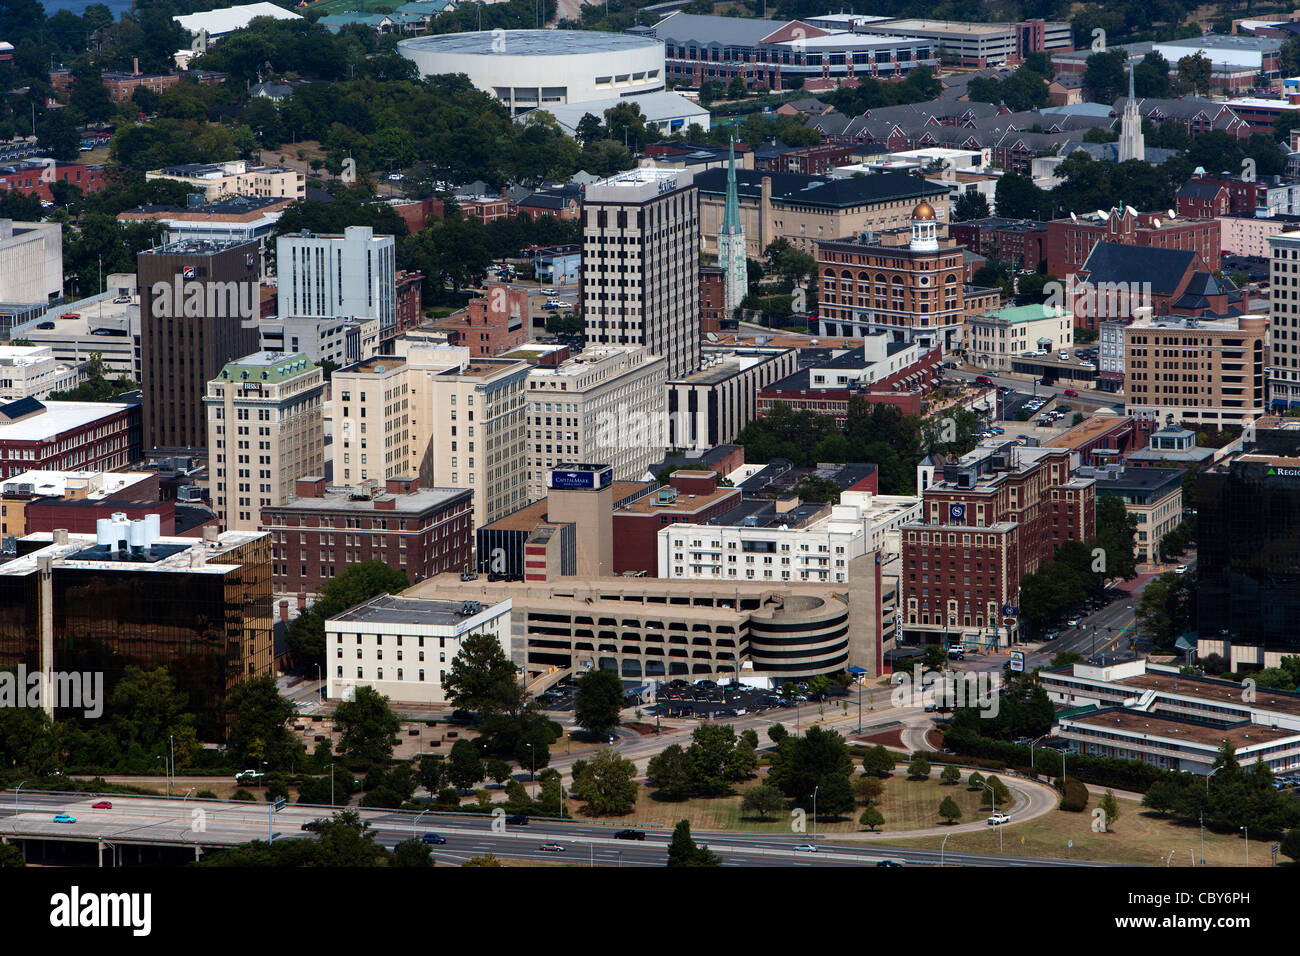 Photographie aérienne de Chattanooga, Tennessee Photo Stock